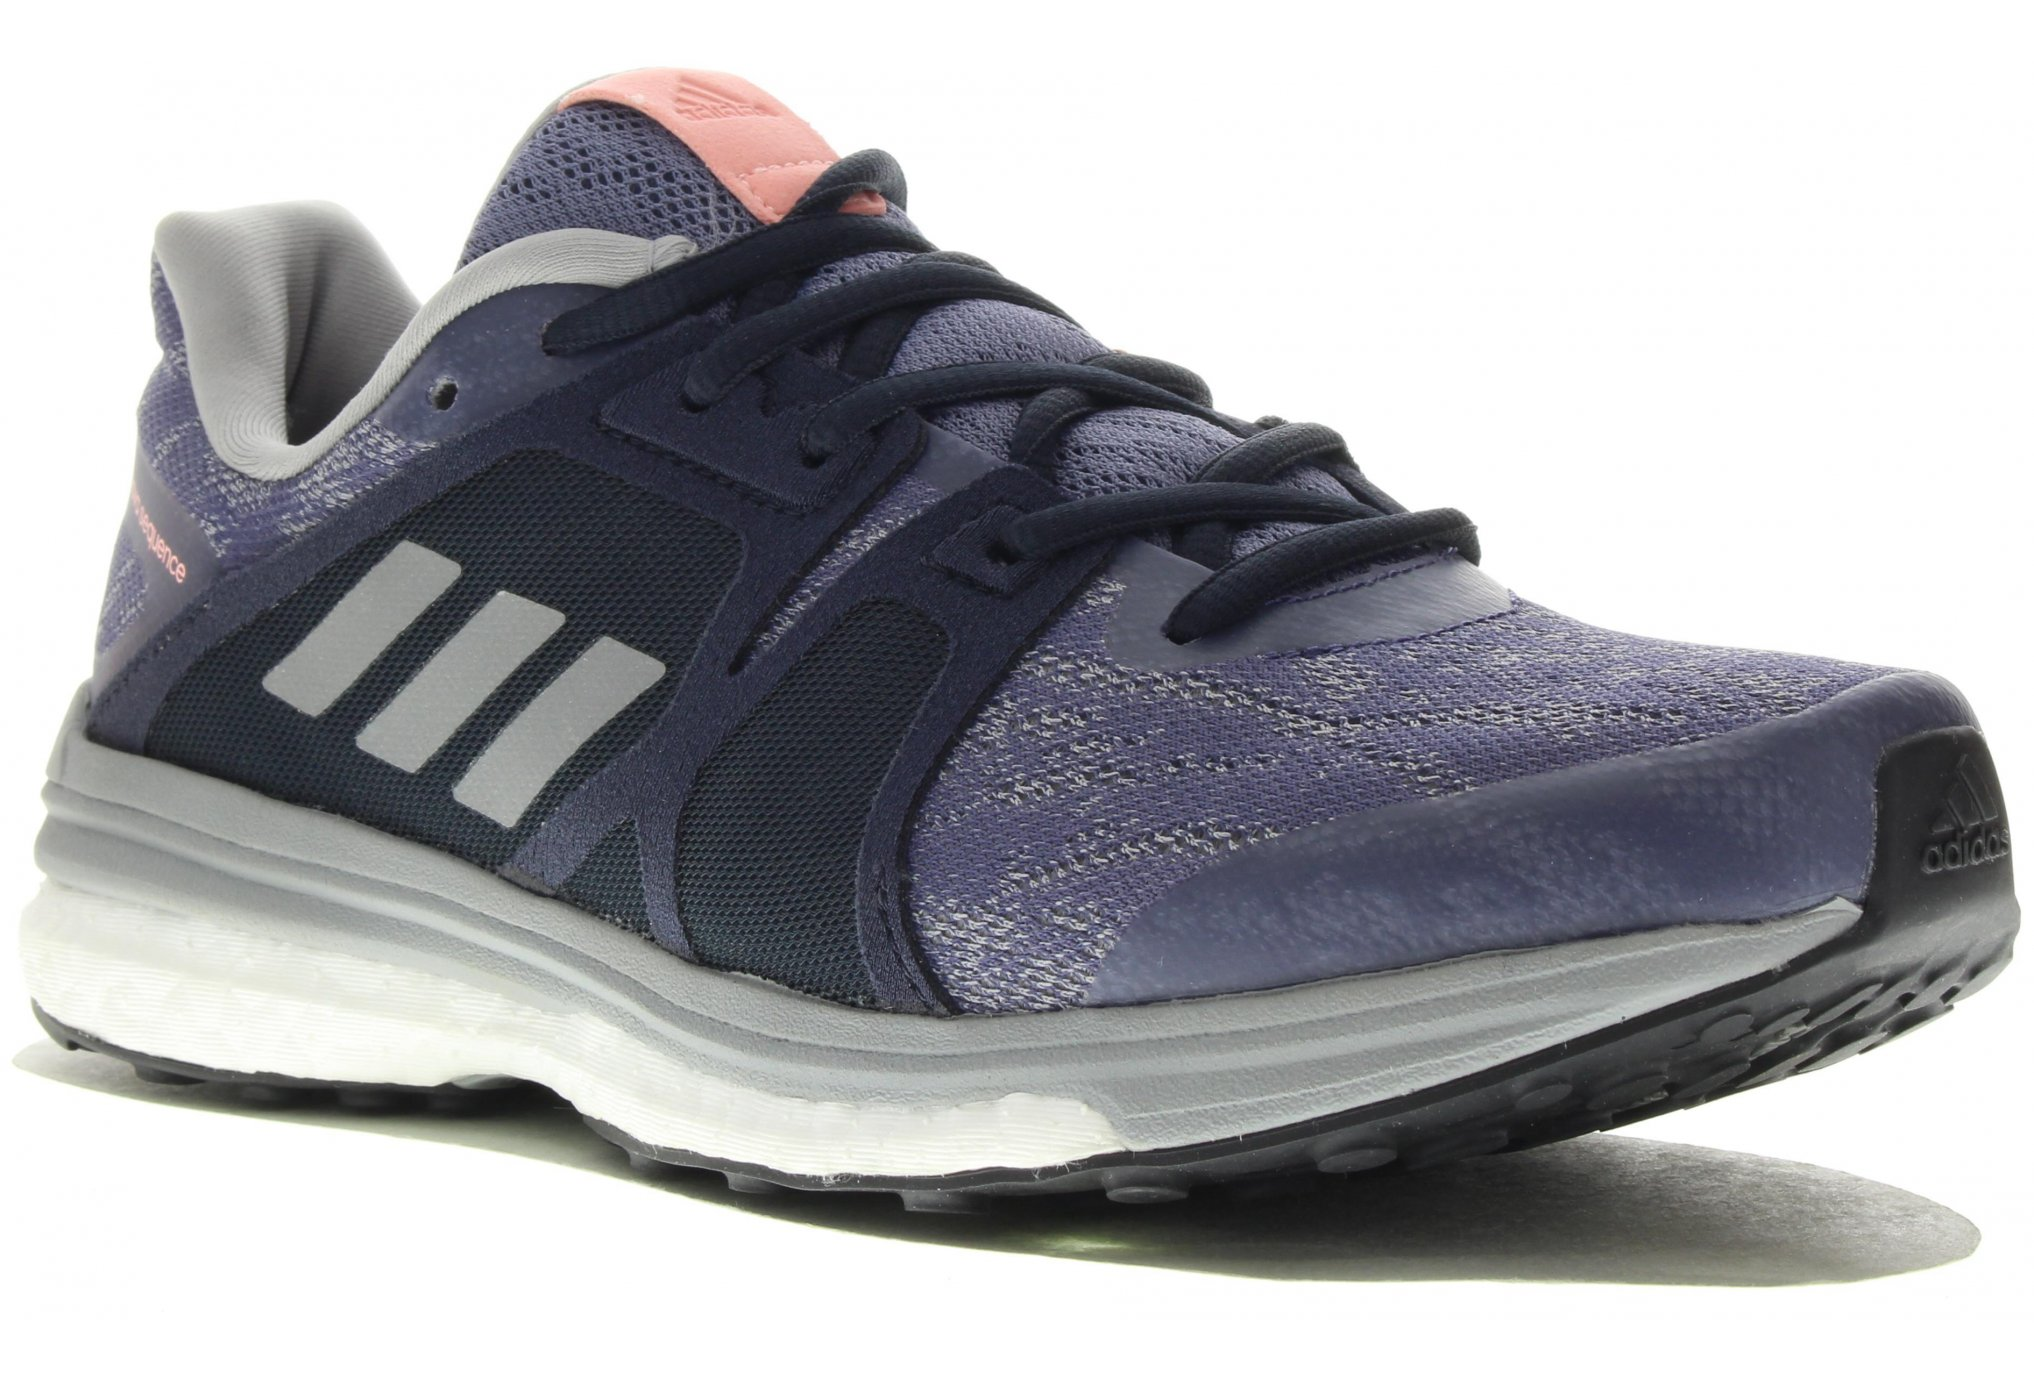 Supernova Chaussures 9 W Sequence Nooewbx Session Boost Adidas Trail BwaBPZrq